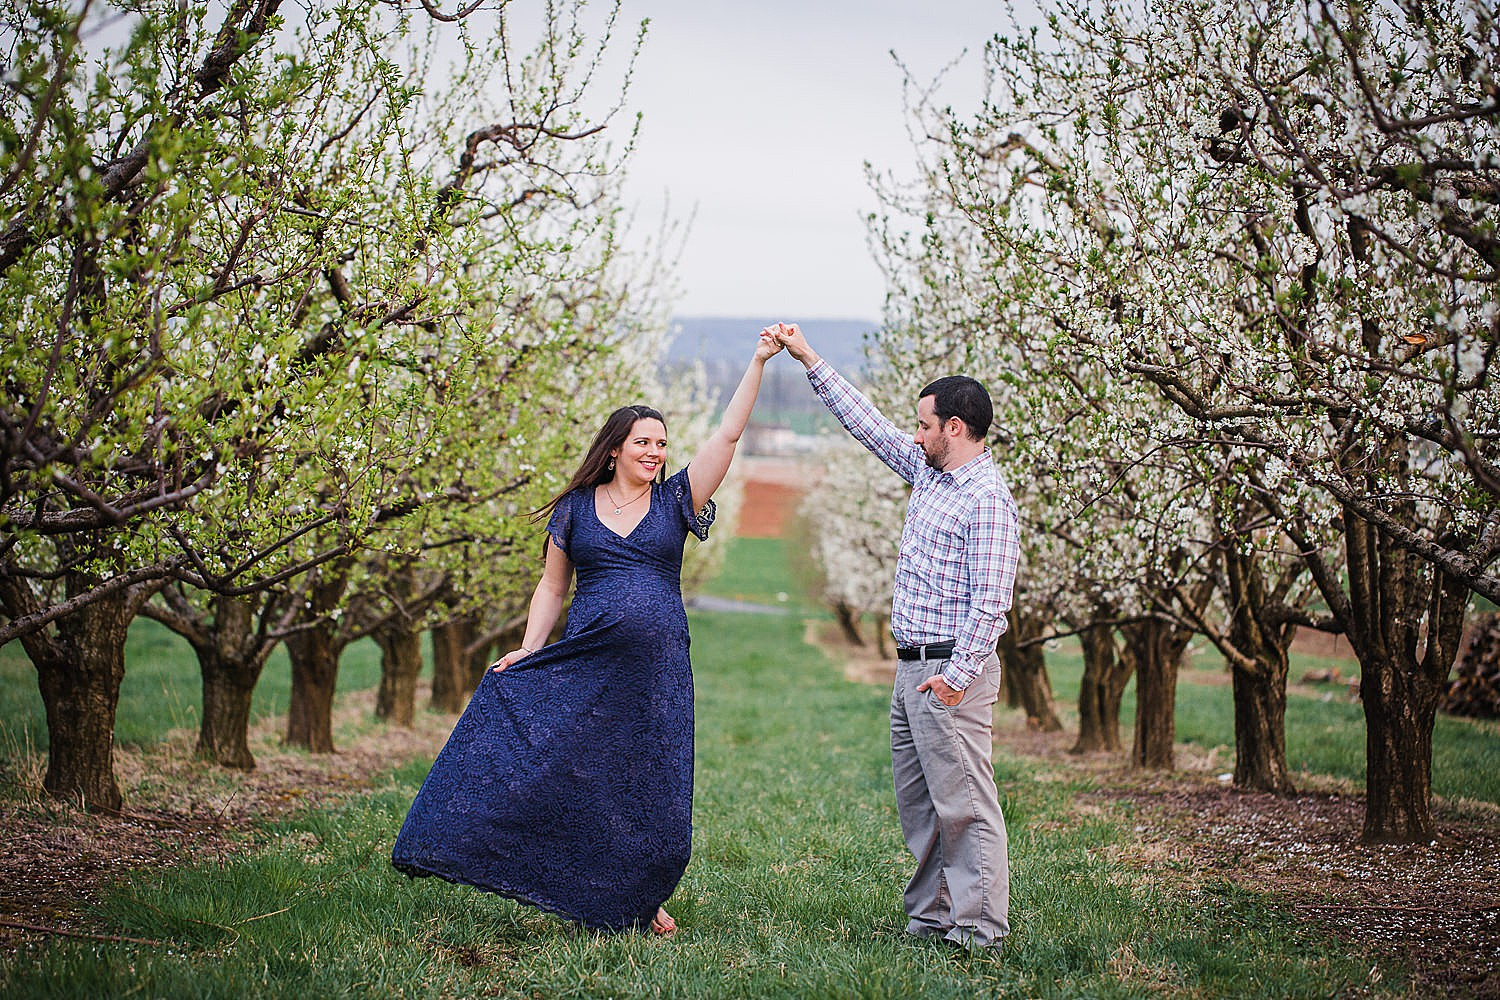 Photo of a pregnant woman in a blue lace dress dancing with her husband in an orchard of flowers.